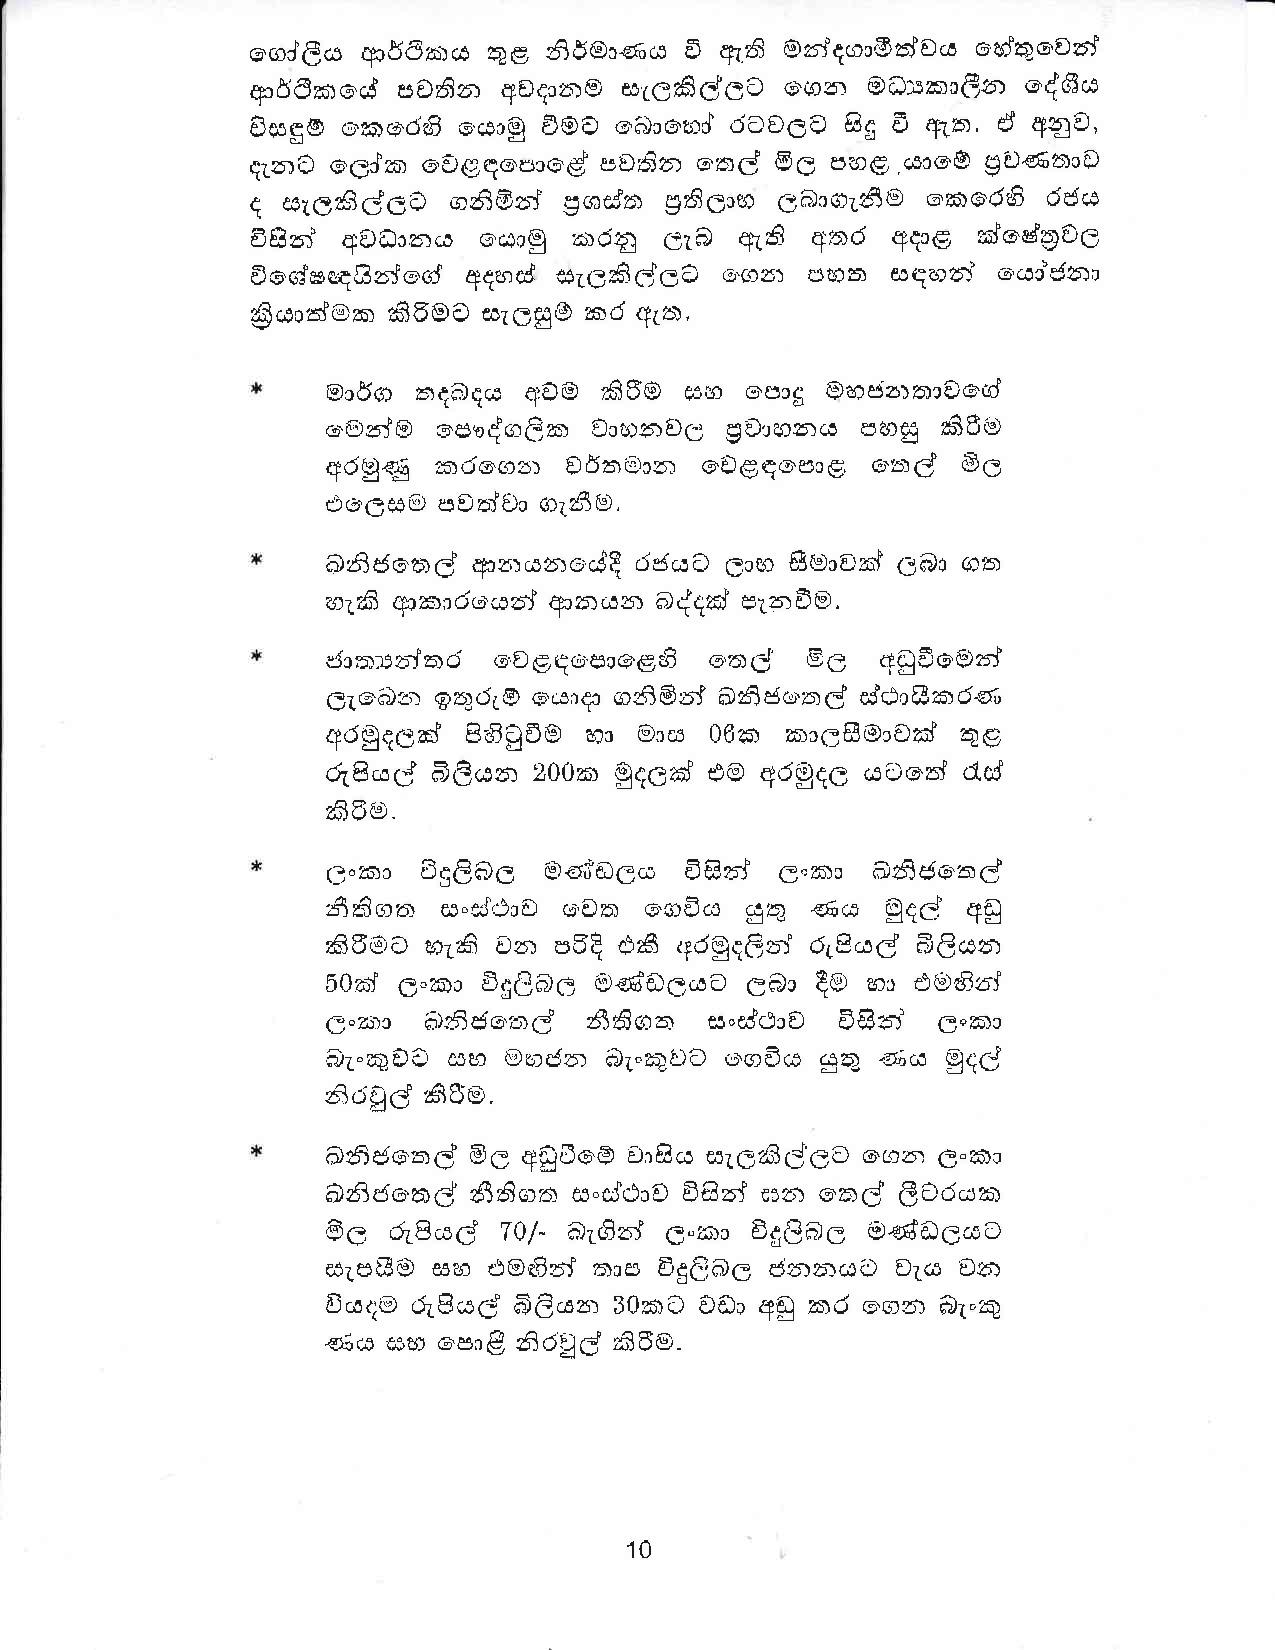 Cabinet Decision on sinhala 18.03.2020 page 010